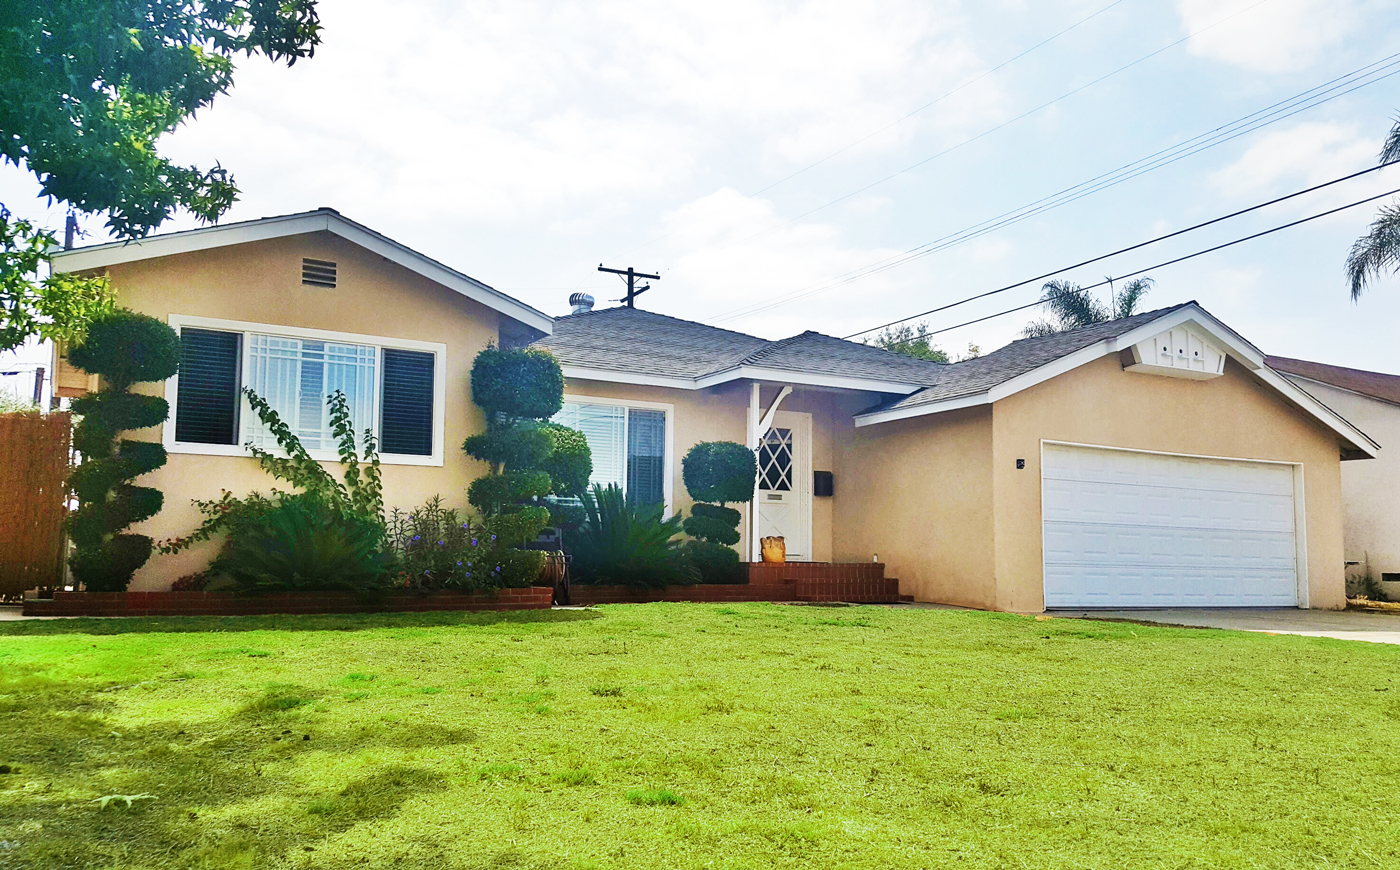 SOLD! 12022 Horton Avenue, Downey CA | 3 BED 3 BATH | 1,920 SQ FT. | CLICK FOR MORE DETAILS